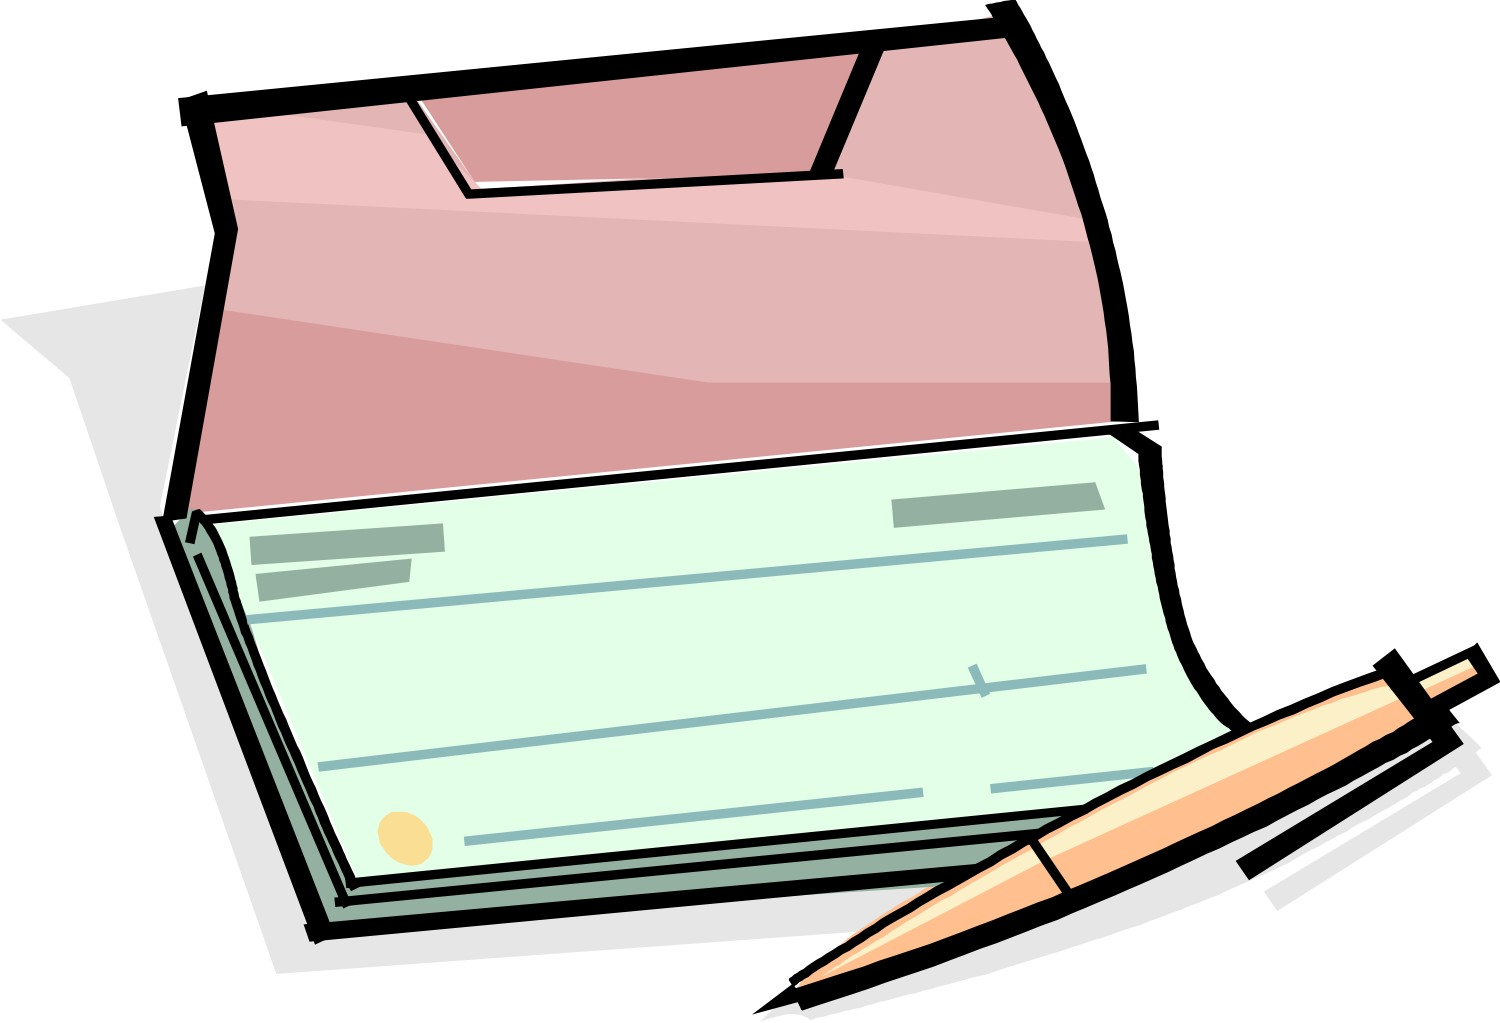 Free Bank Account Cliparts, Download Free Clip Art, Free.